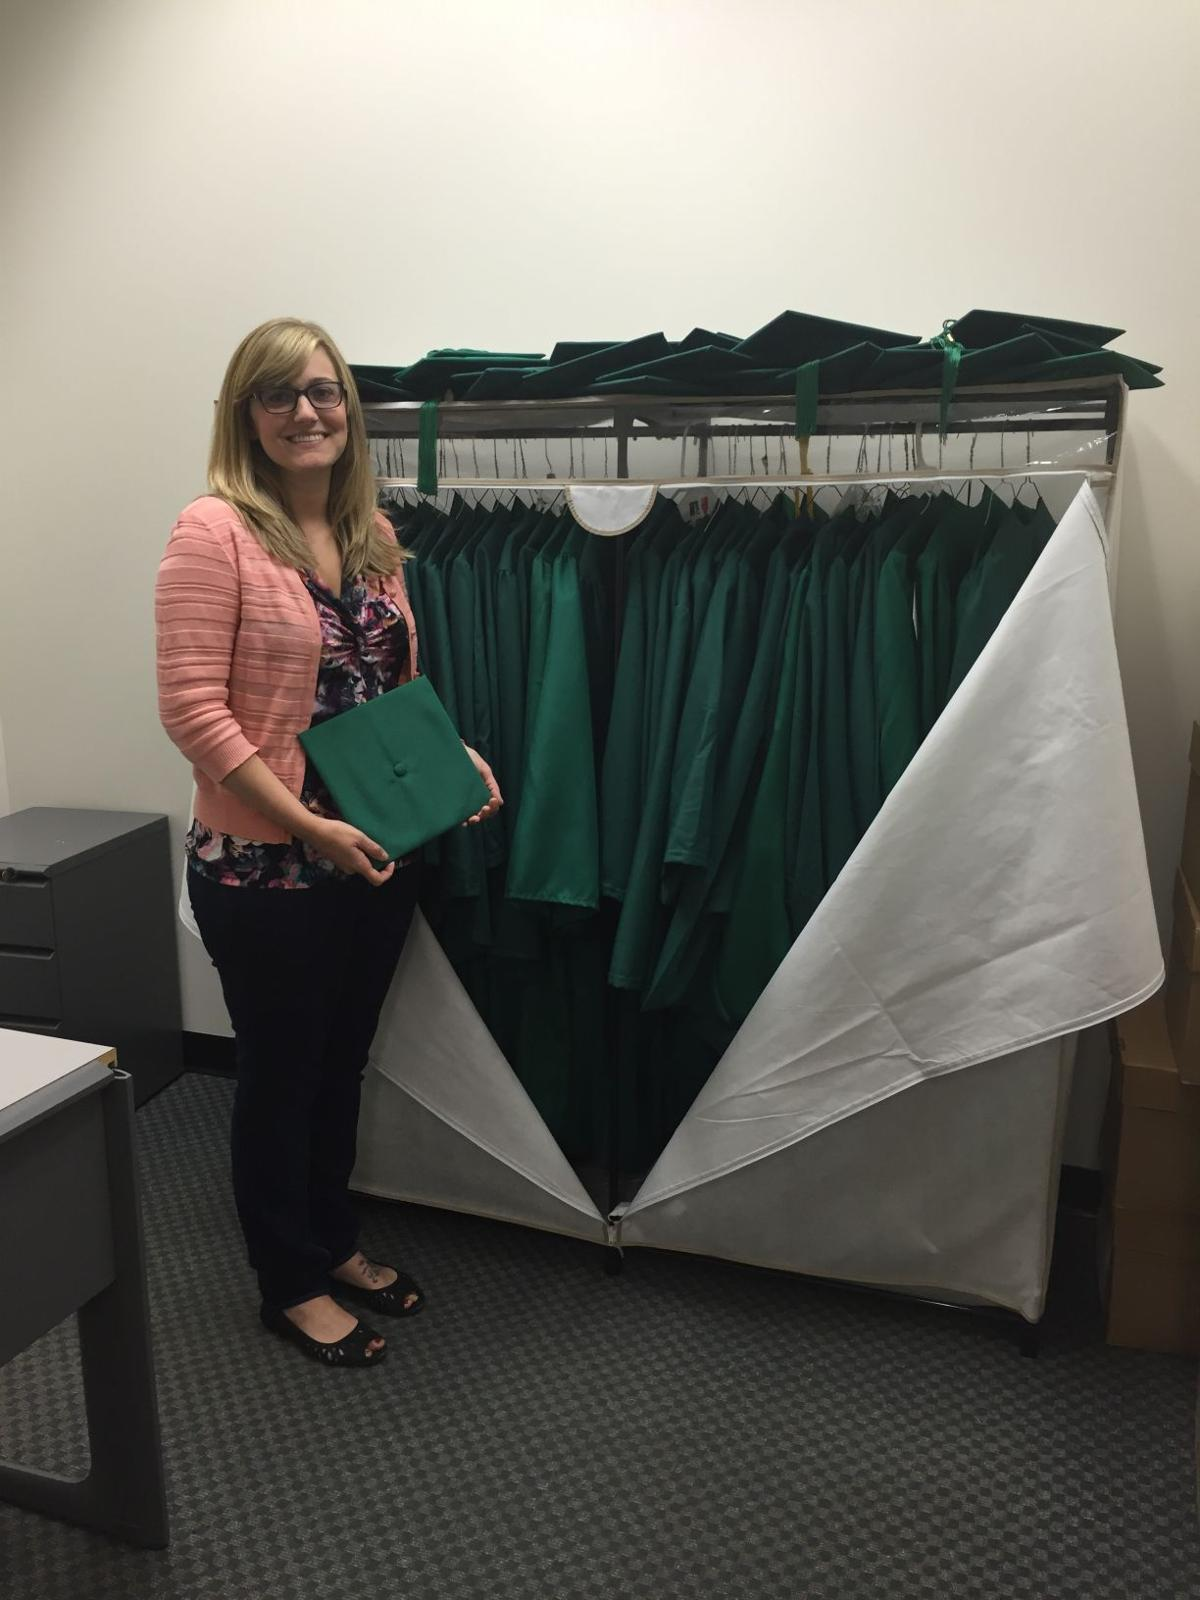 George Mason offers gowns to graduates in need | Virginia | richmond.com